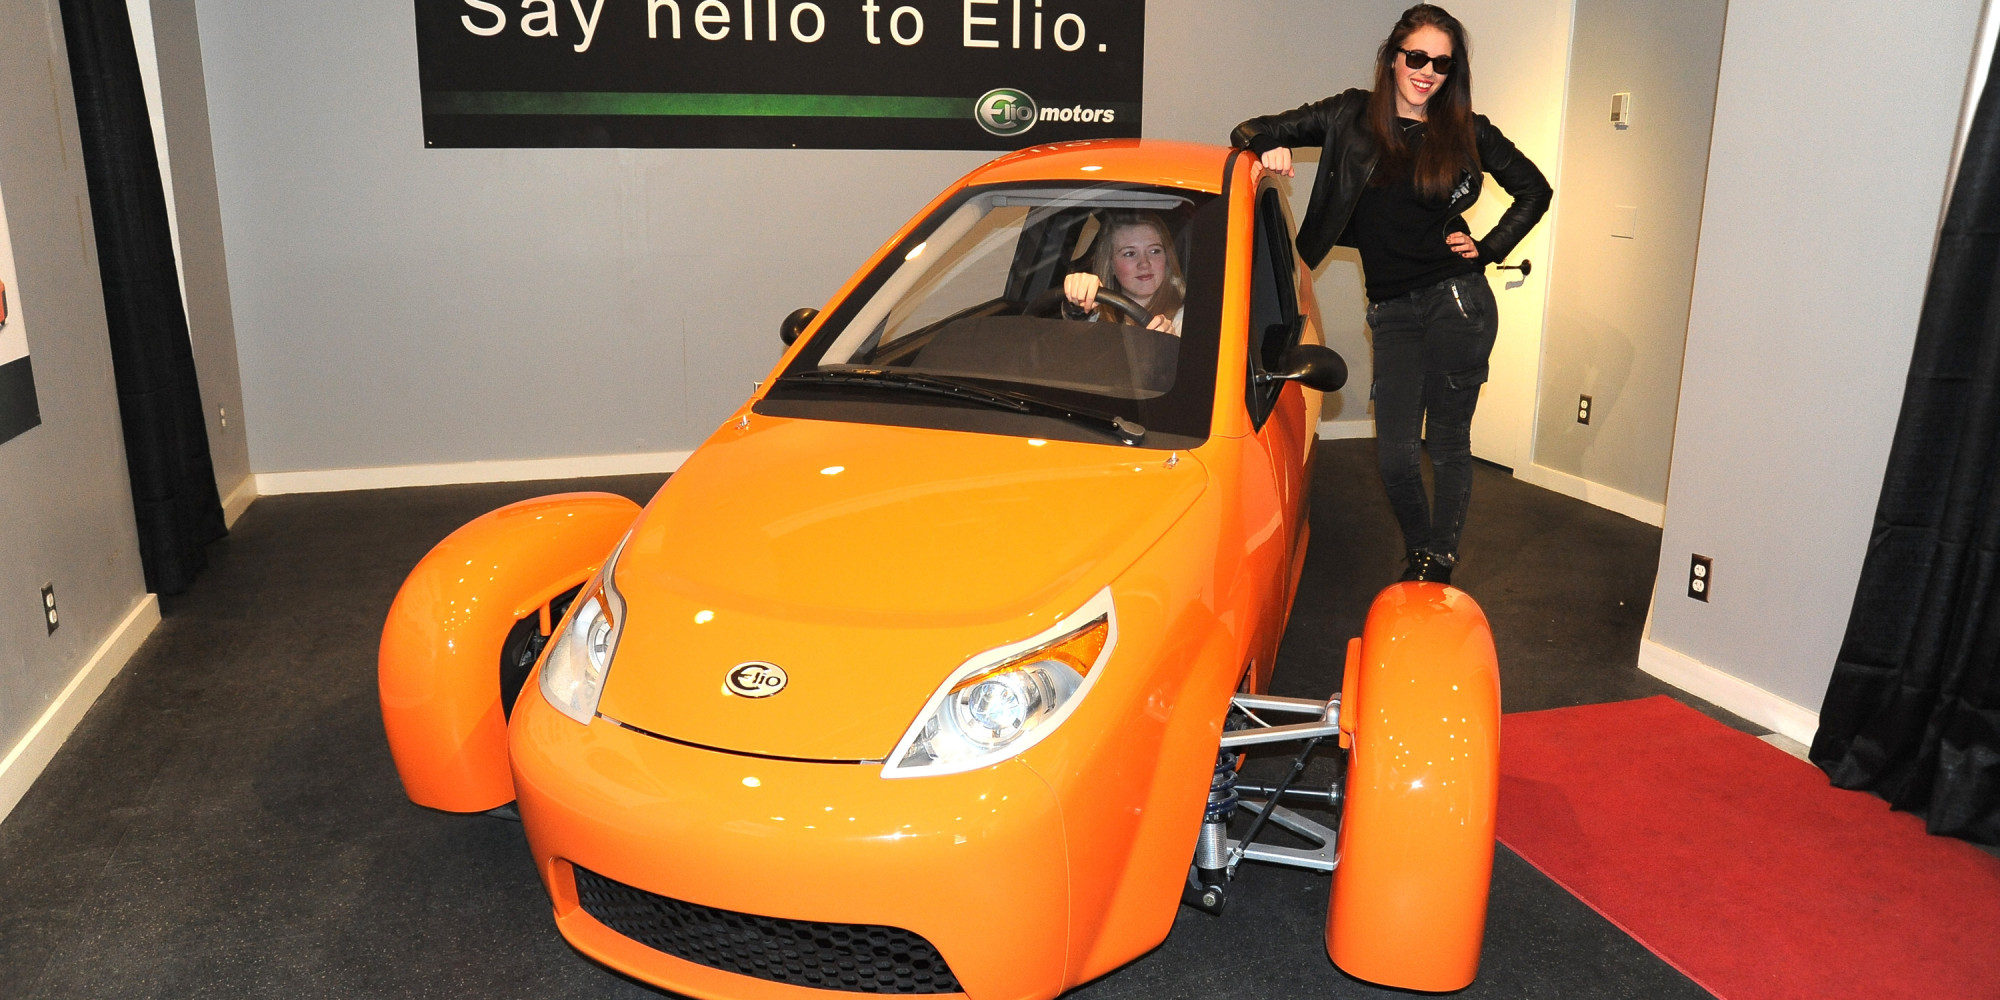 Elio 3 Wheeled Commuter Car Is Closer To Going On Sale